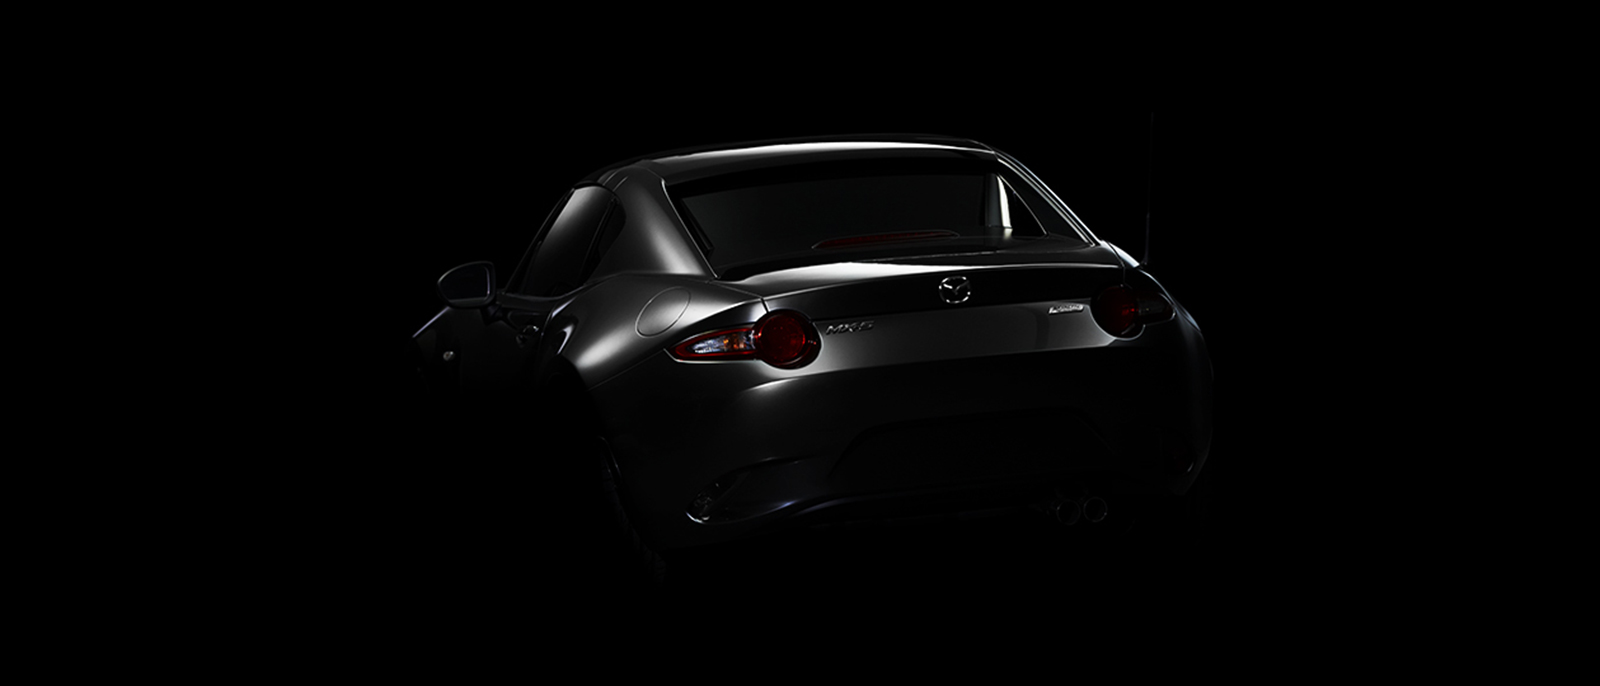 2016 Mazda MX-5 RF rear view